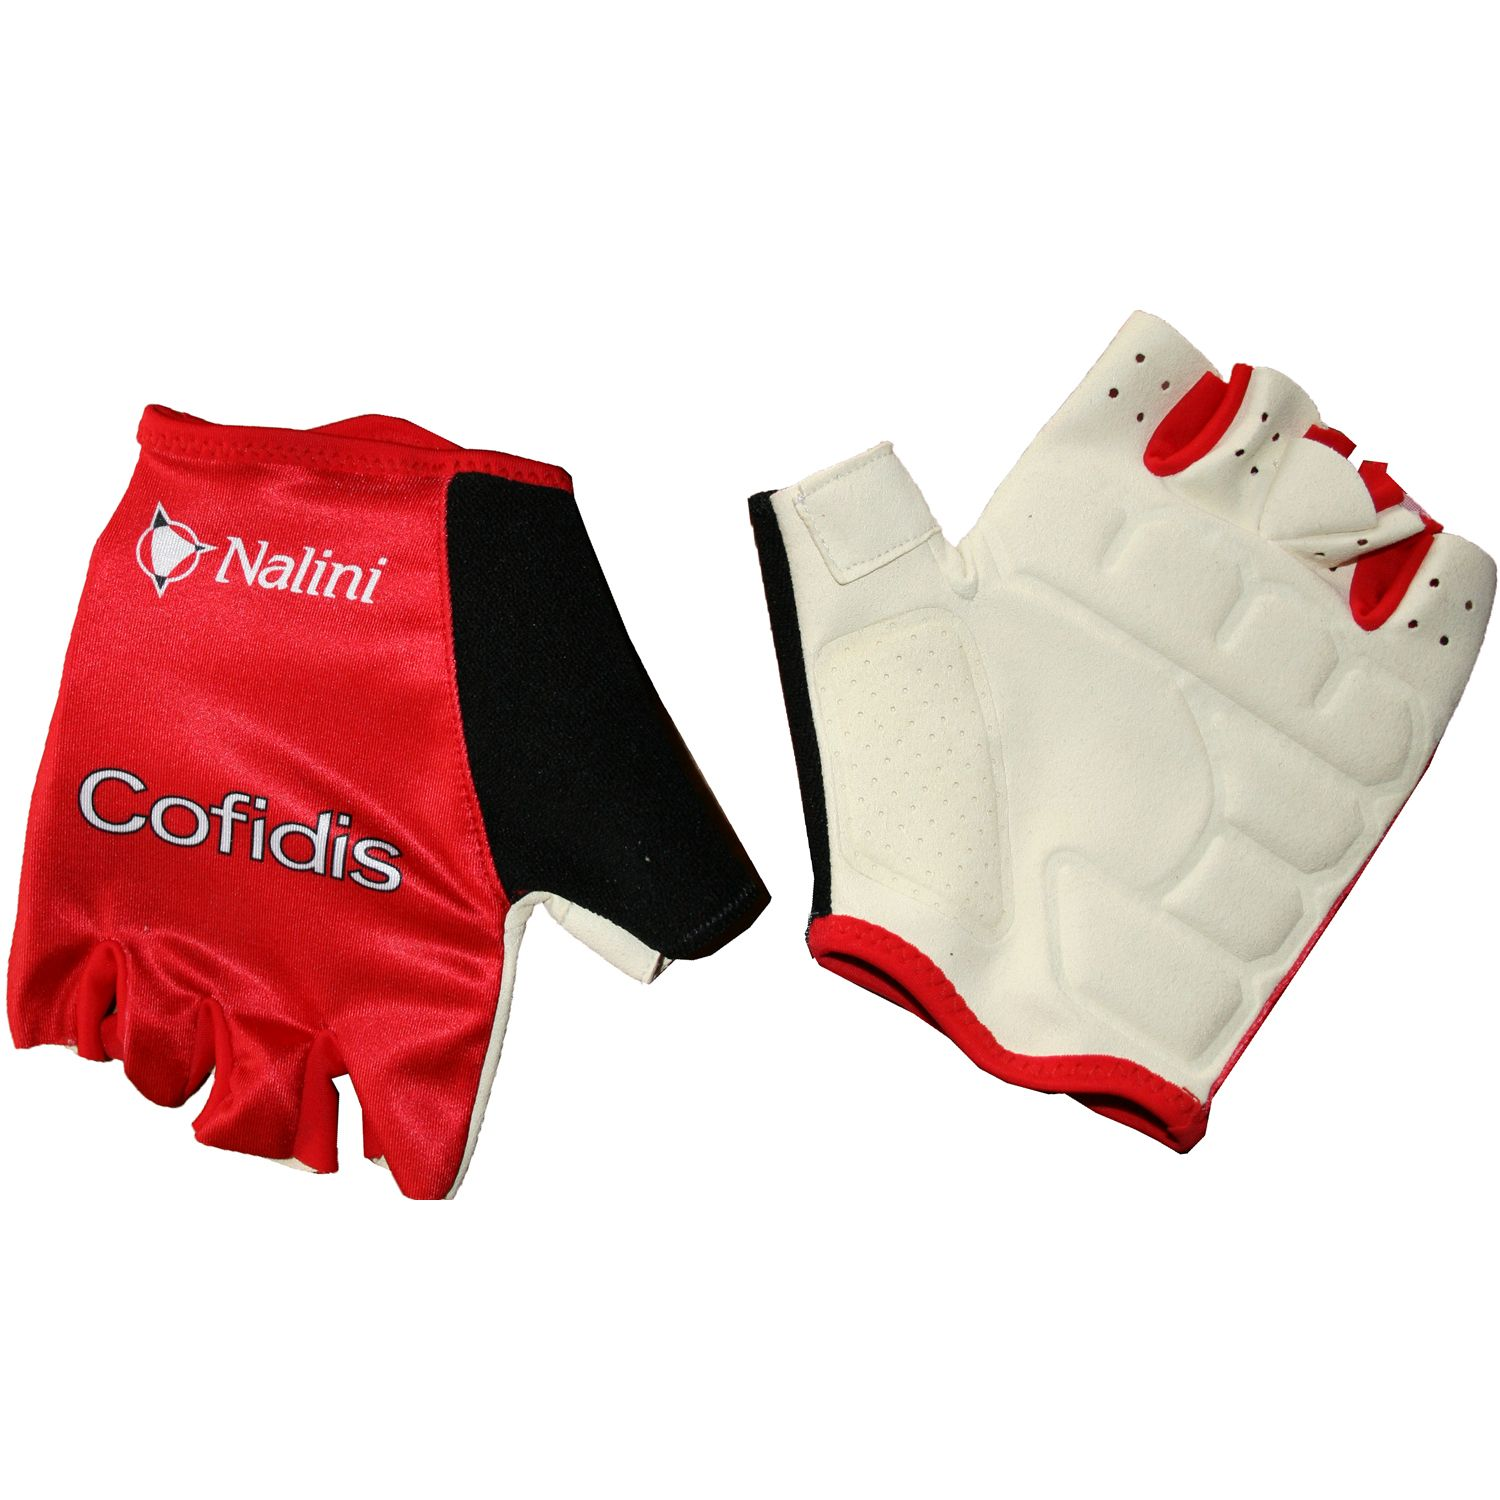 NALINI COFIDIS 2018 short finger gloves - professional cycling team 7d1eab906